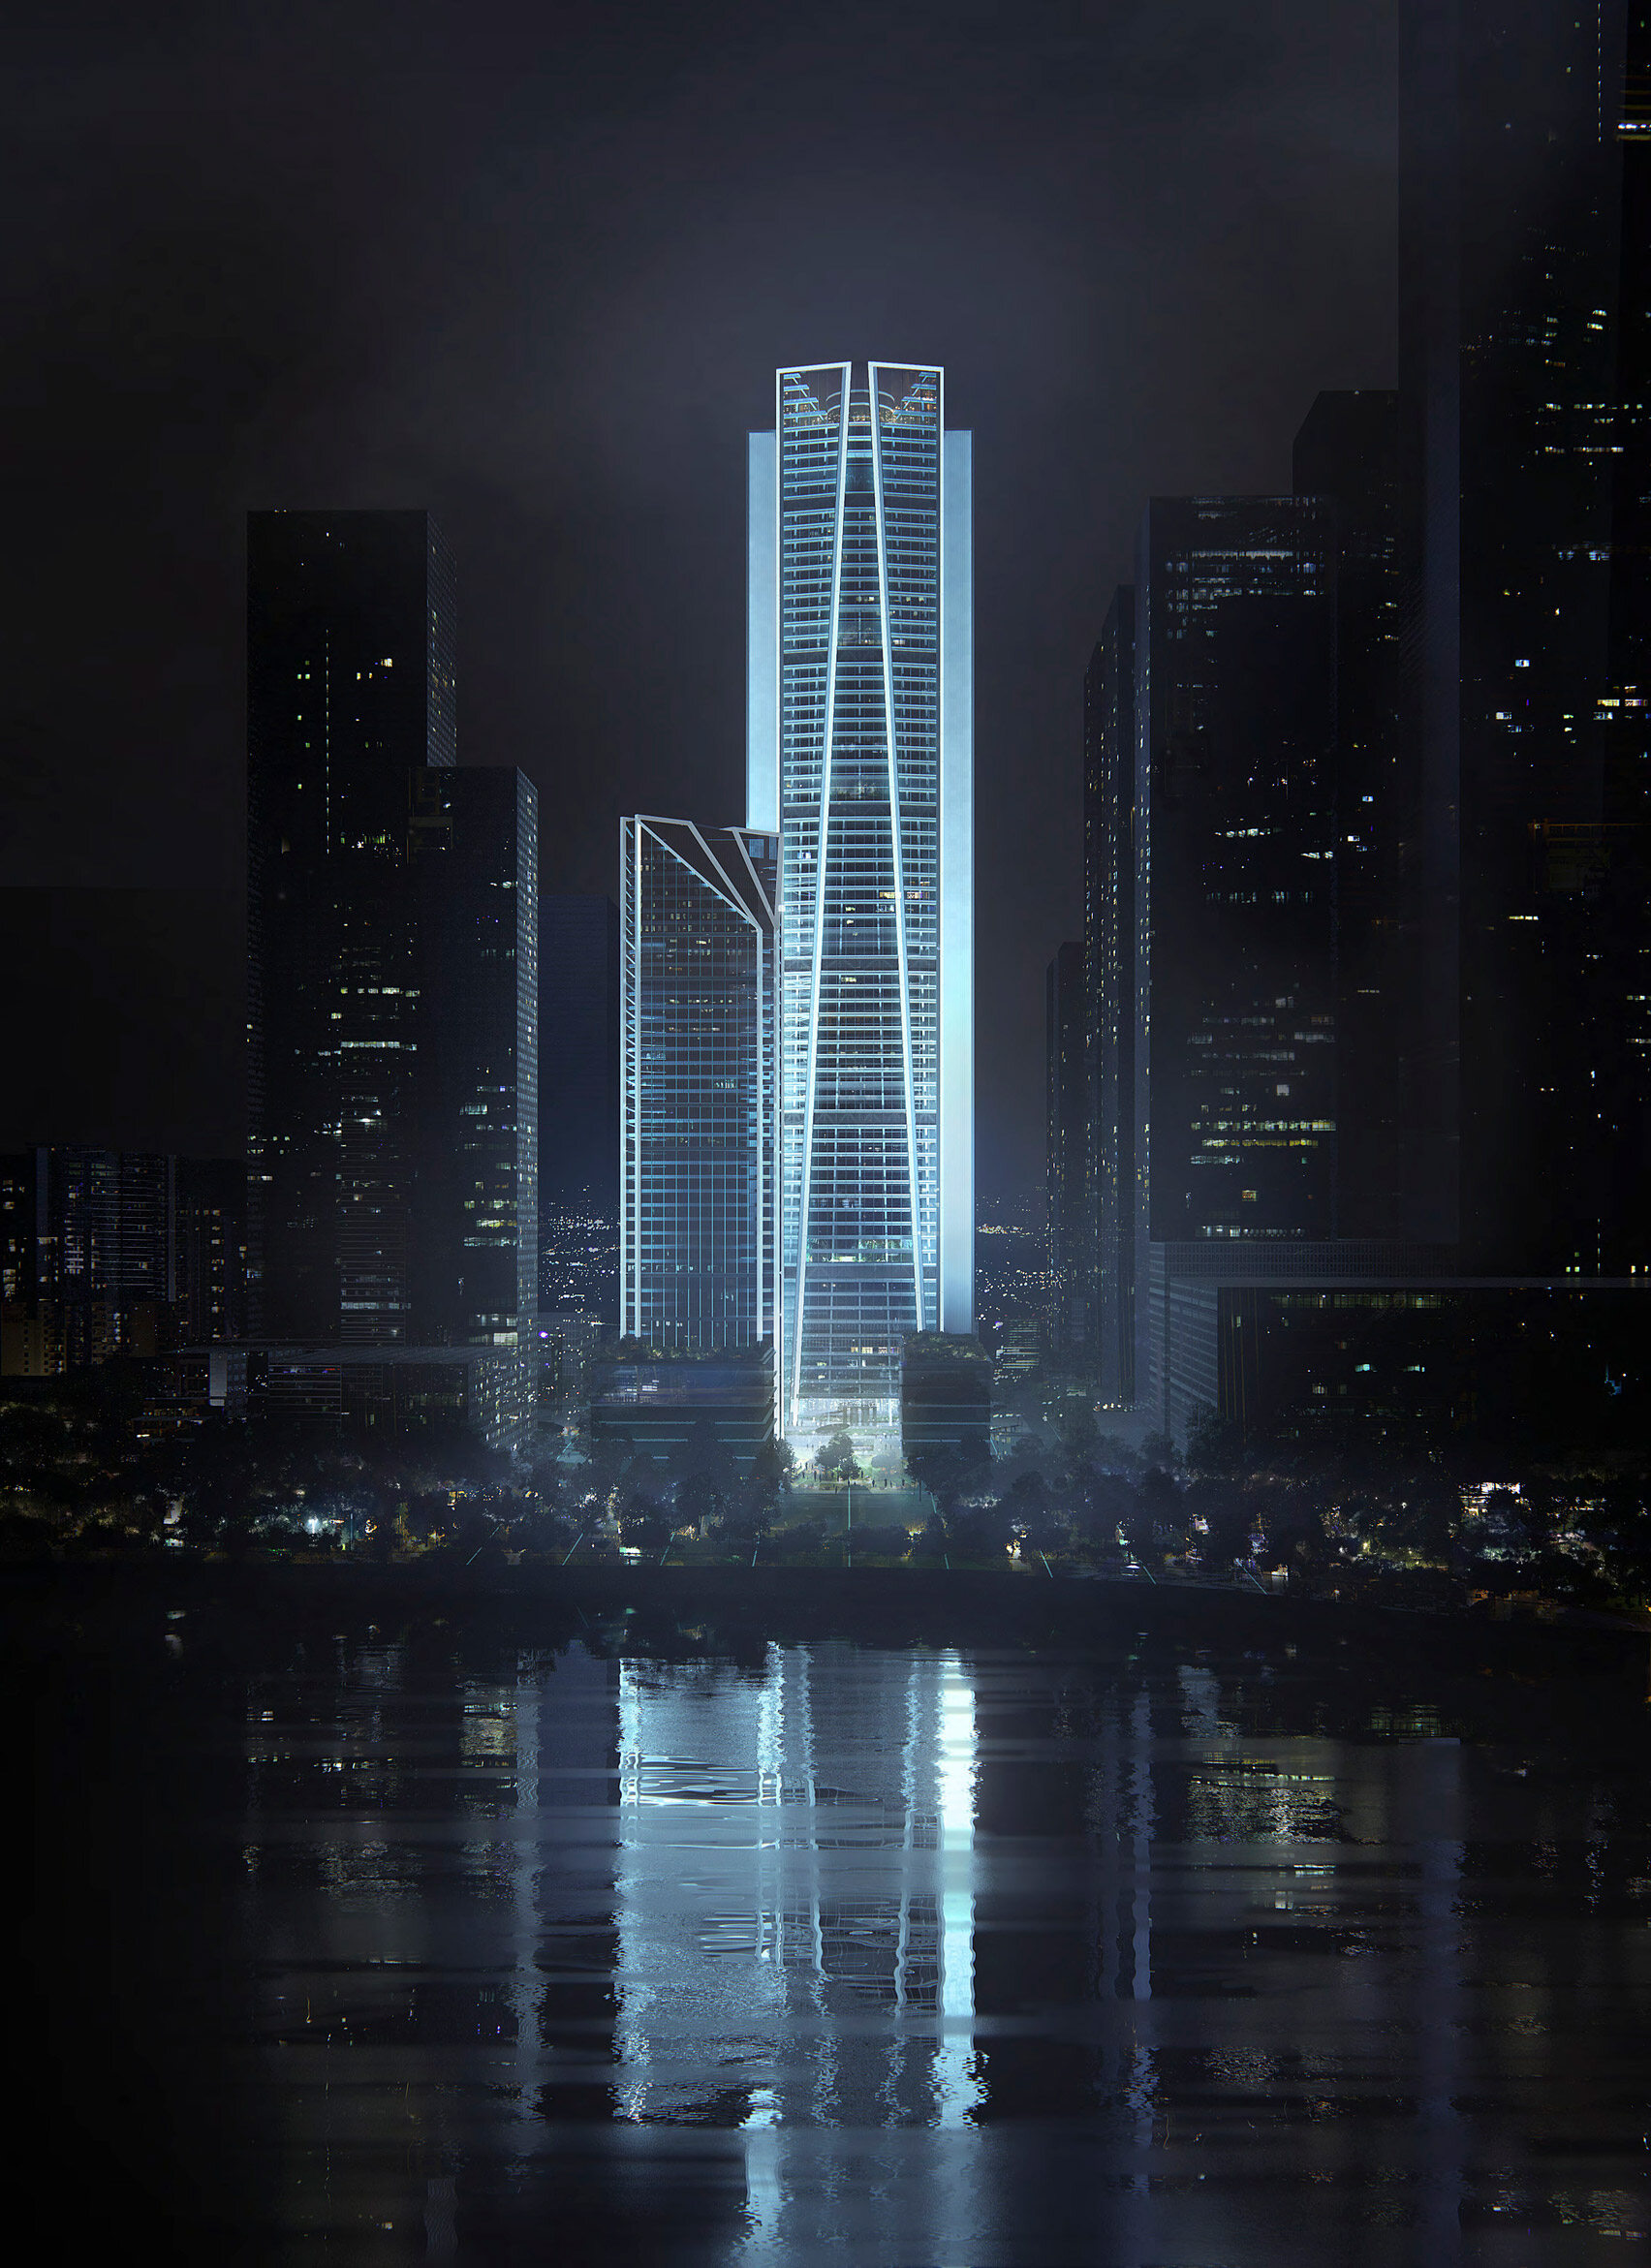 Siedziba China Merchants Bank w Shenzhen